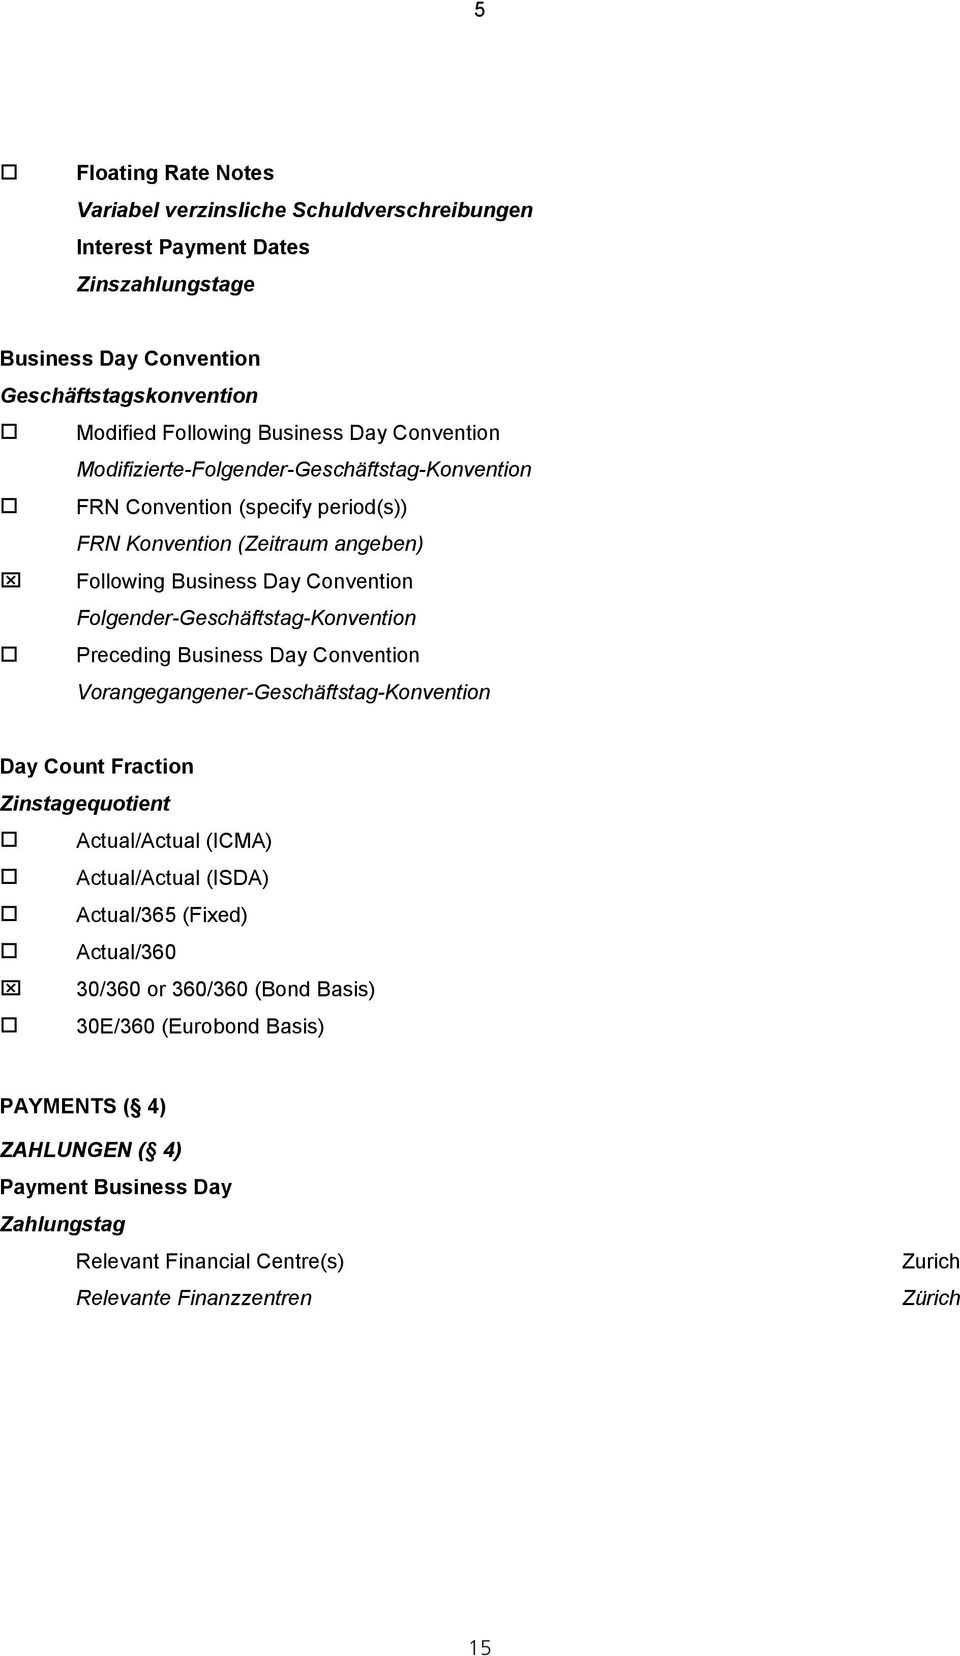 Folgender-Geschäftstag-Konvention o Preceding Business Day Convention Vorangegangener-Geschäftstag-Konvention Day Count Fraction Zinstagequotient o Actual/Actual (ICMA) o Actual/Actual (ISDA)